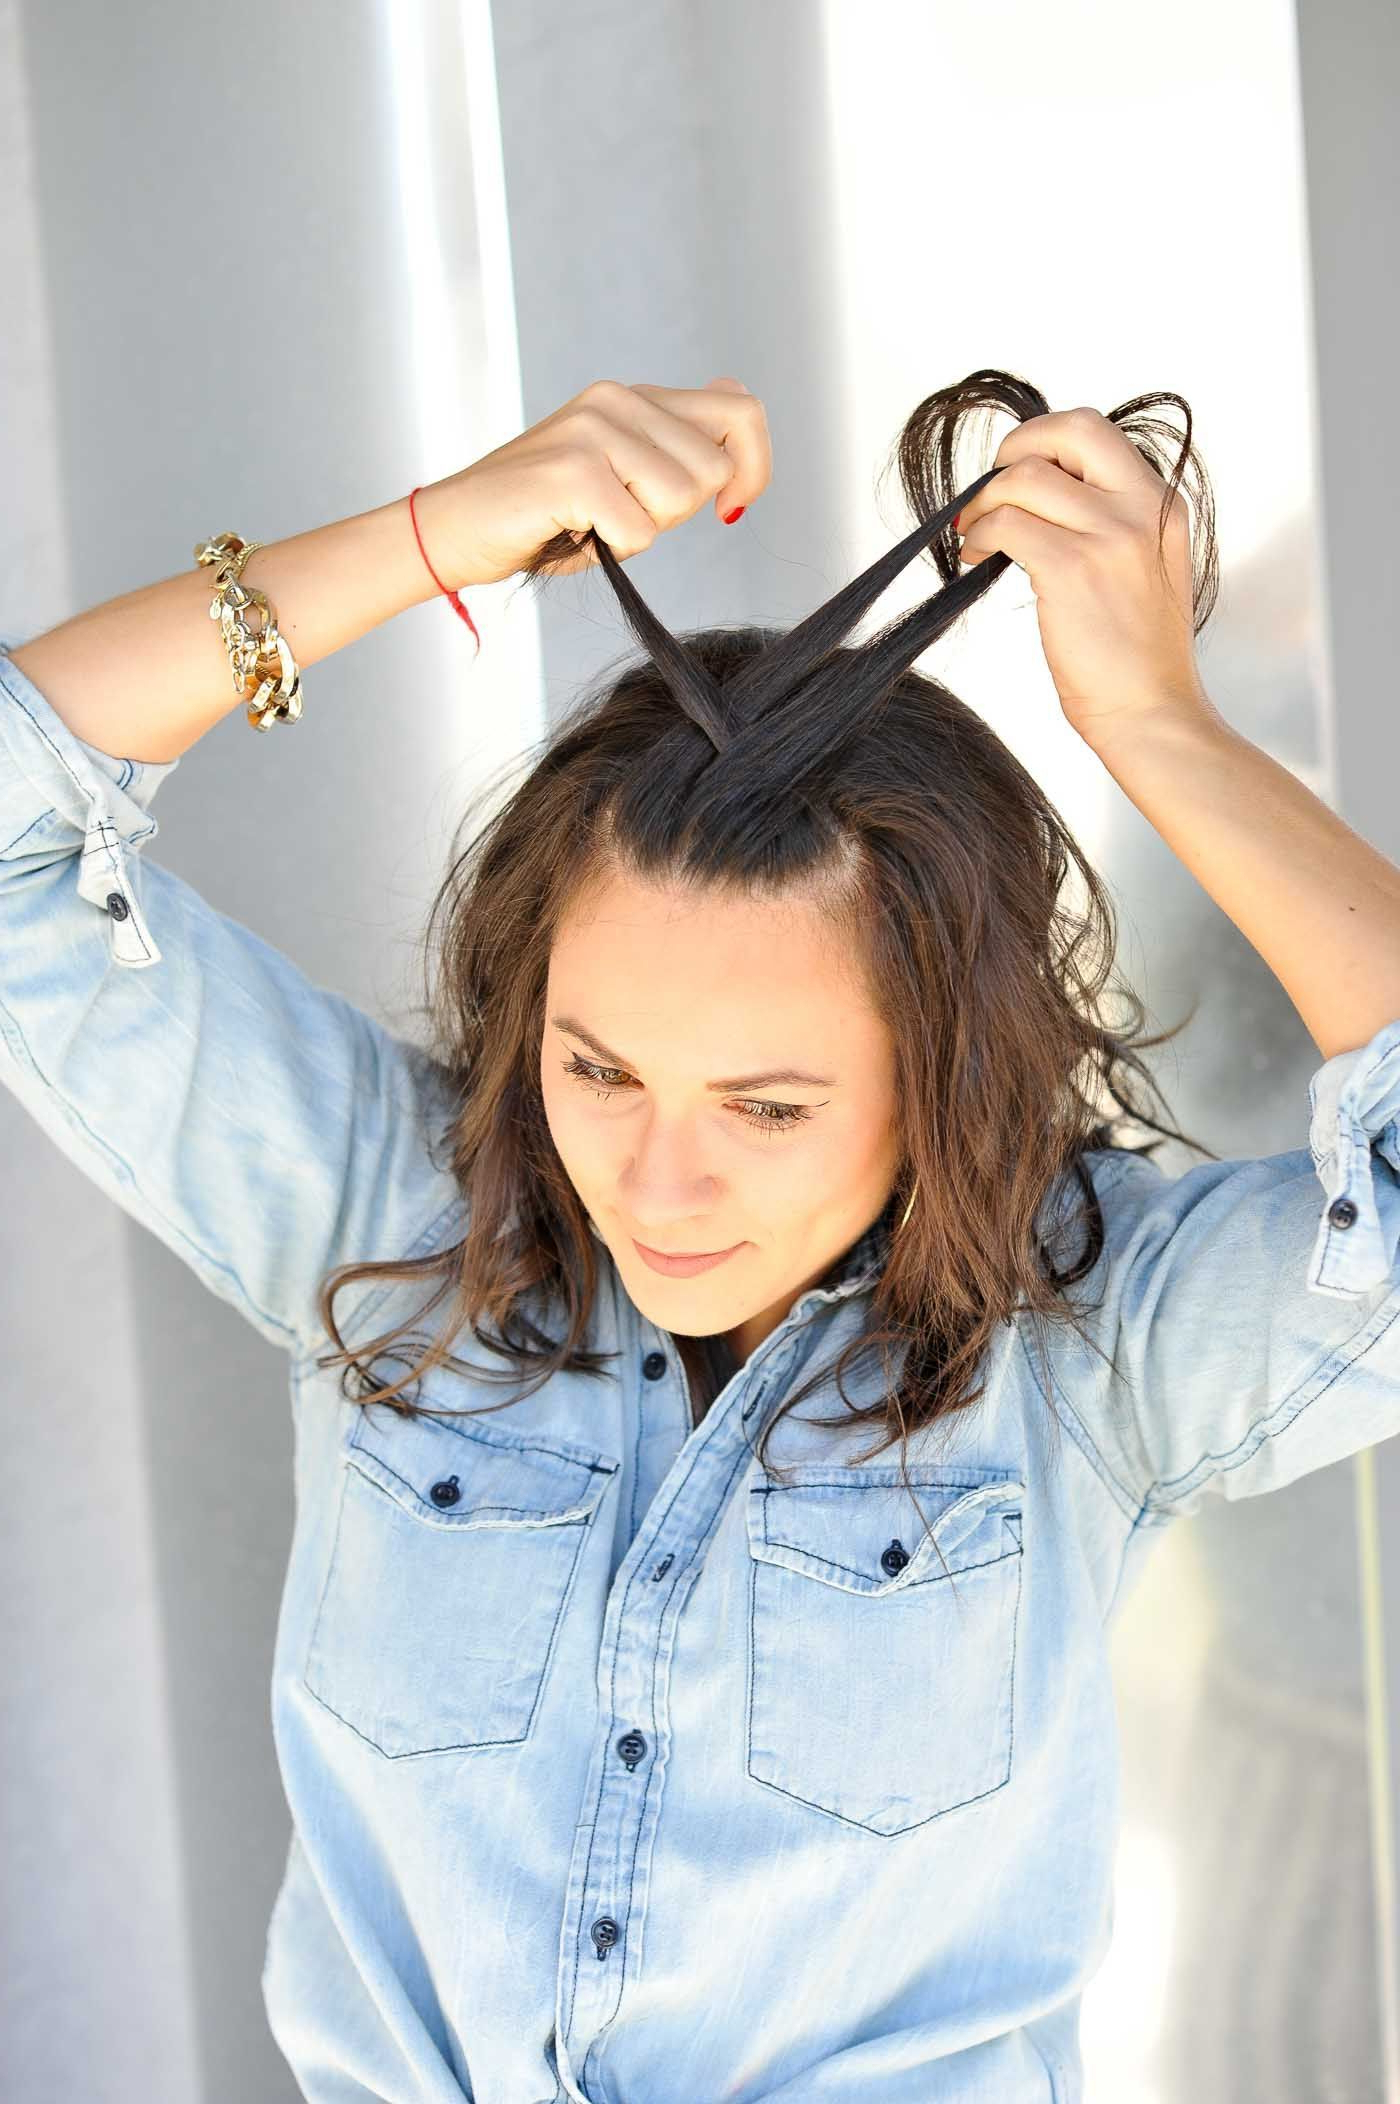 Braided Half Up Half Down Hairstyle – How To Braid Your With 2017 Half Up Half Down Hairstyles With A Fringe (View 17 of 20)